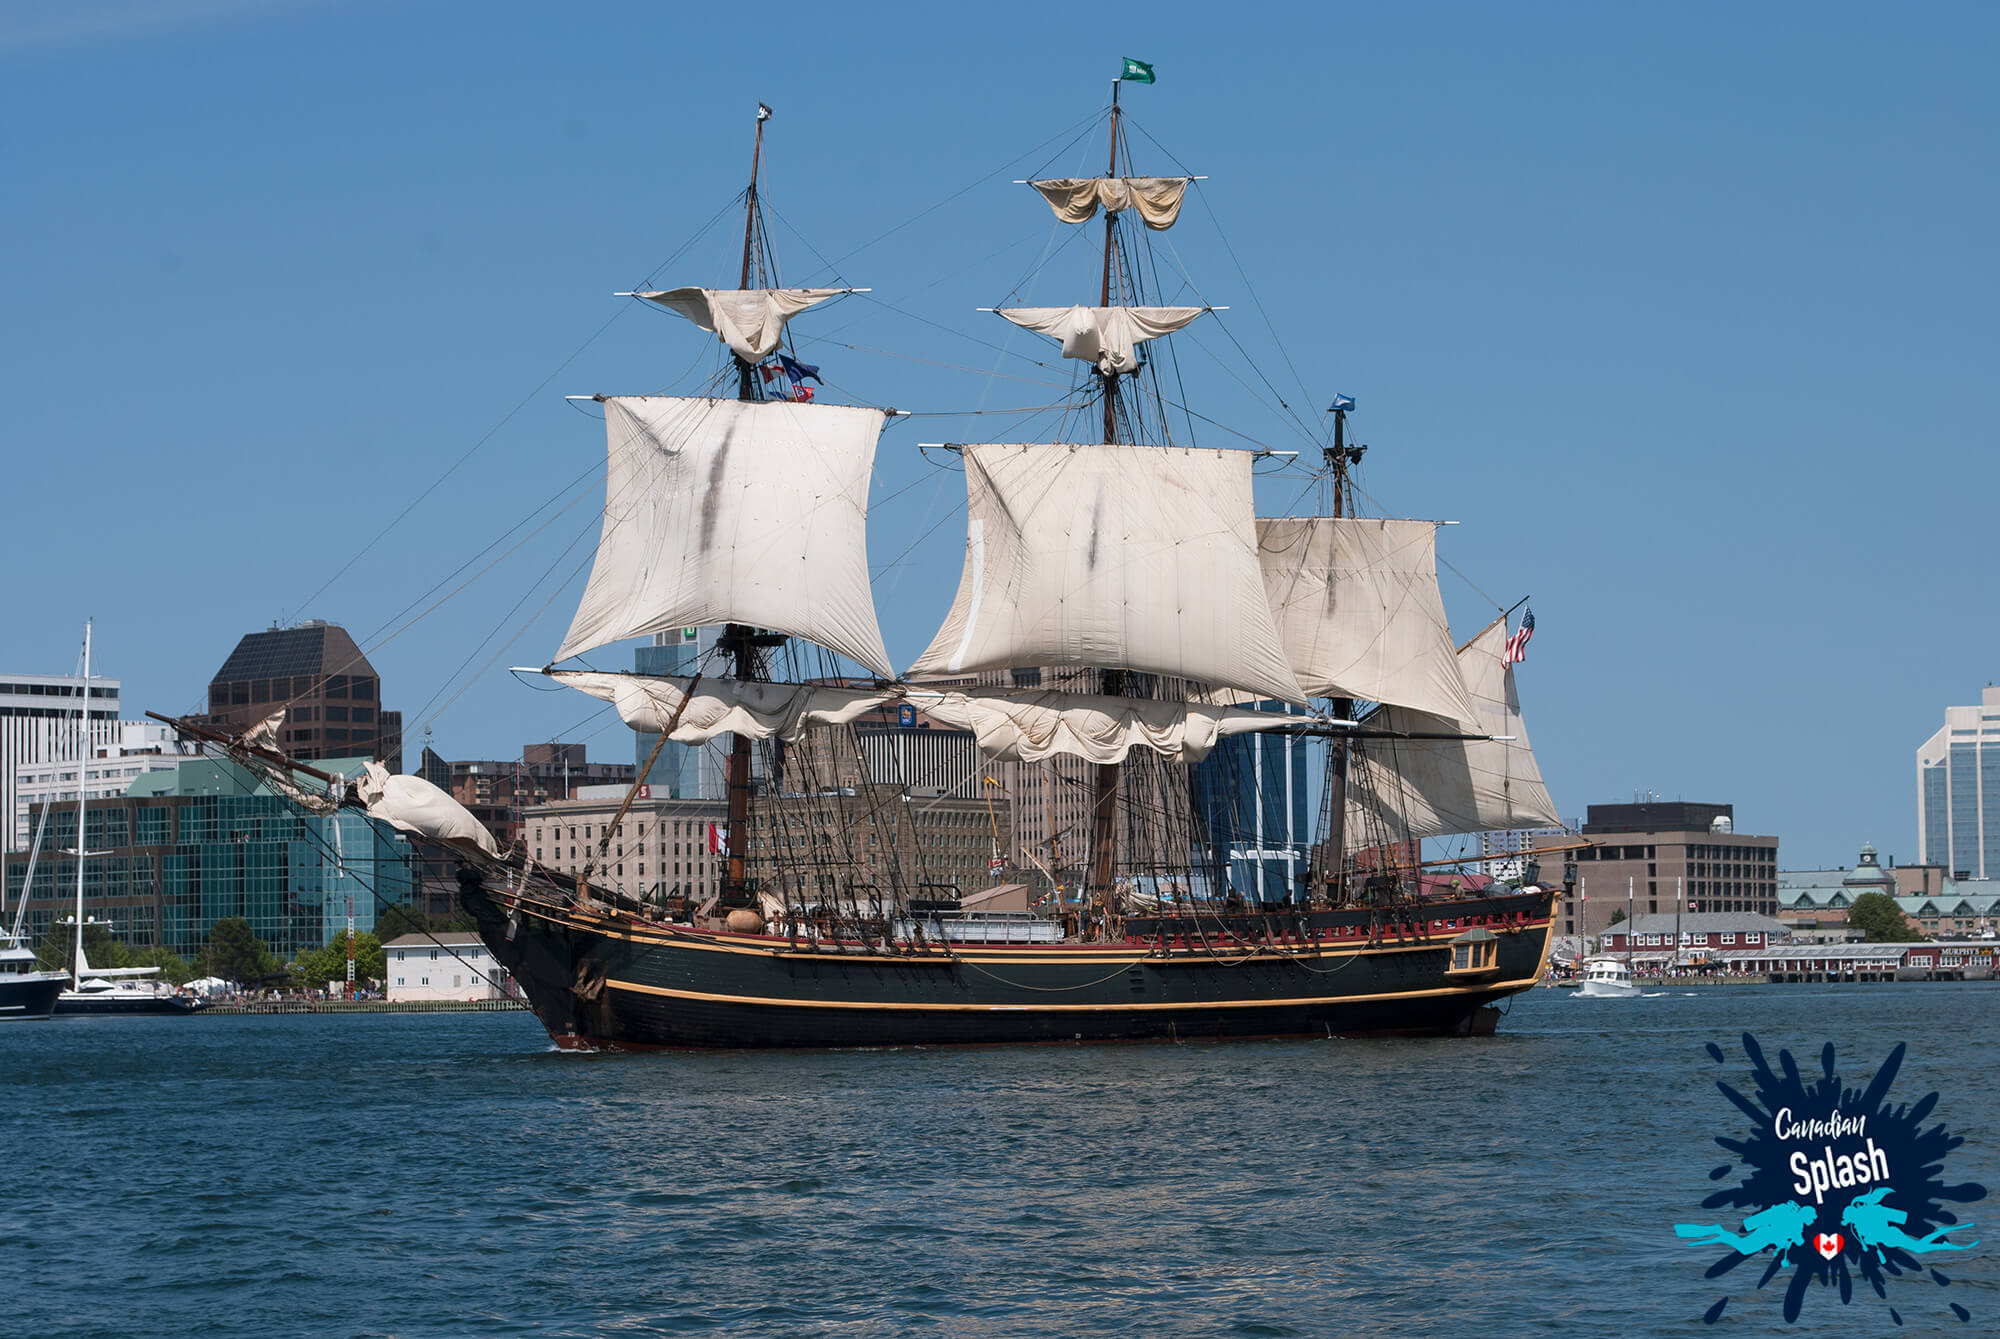 The Halifax Tall Ship Festival On The Water, Nova Scotia, Canadian Splash Scuba Diving